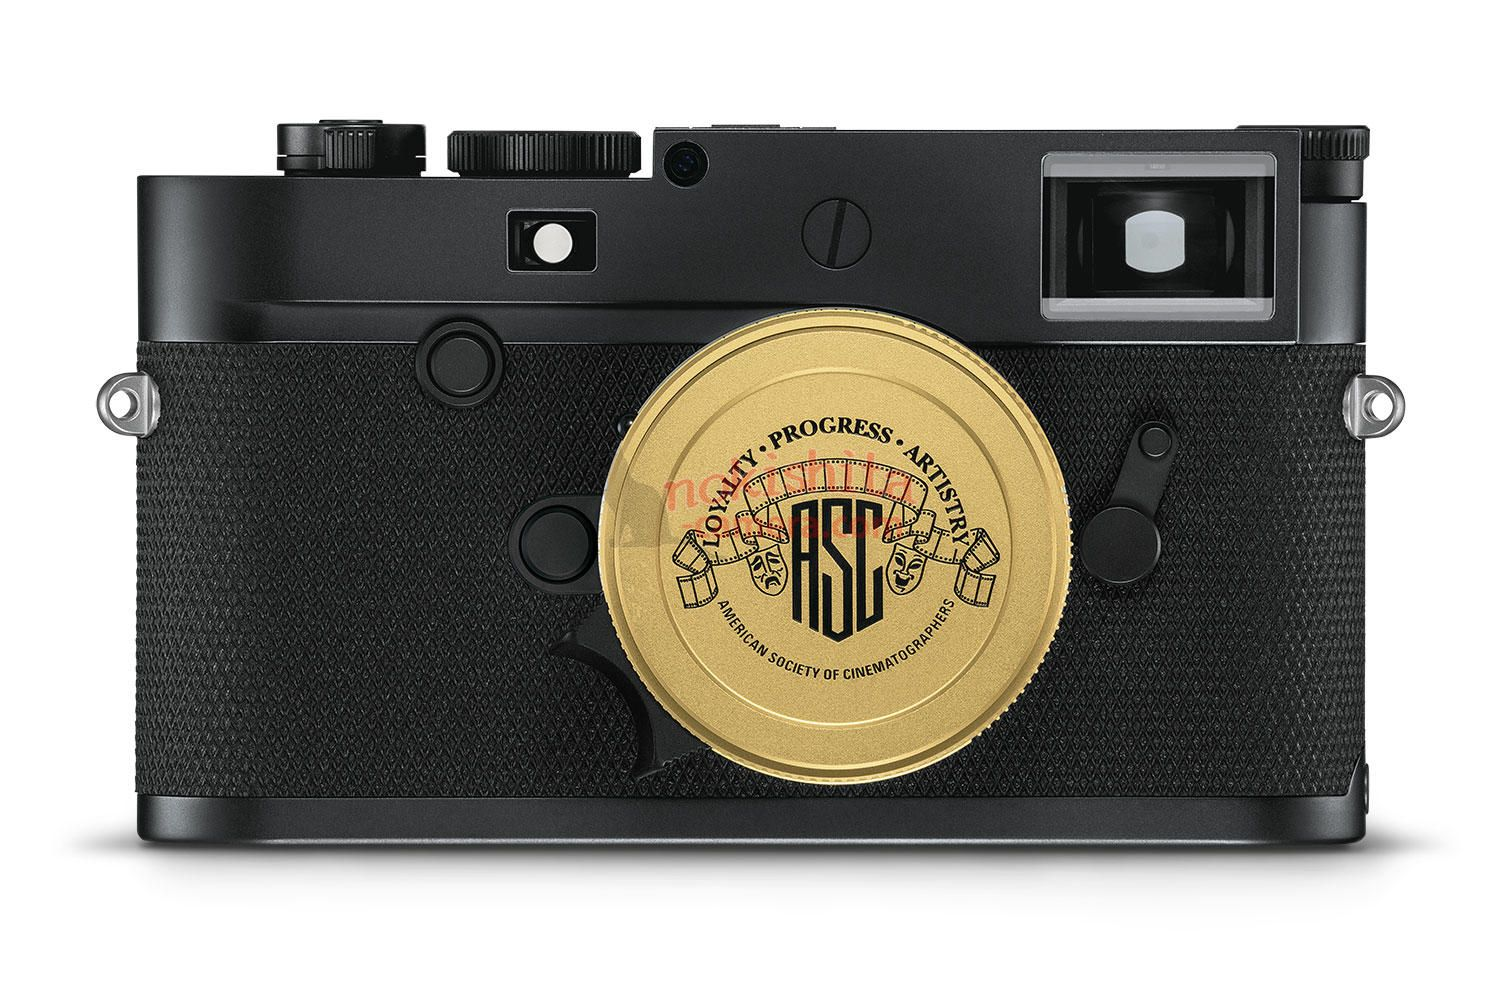 https://leicarumors.com/wp-content/uploads/2019/02/Leica-M10-P-ASC-100-limited-edition-camera-American-Society-of-Cinematographers2.jpg